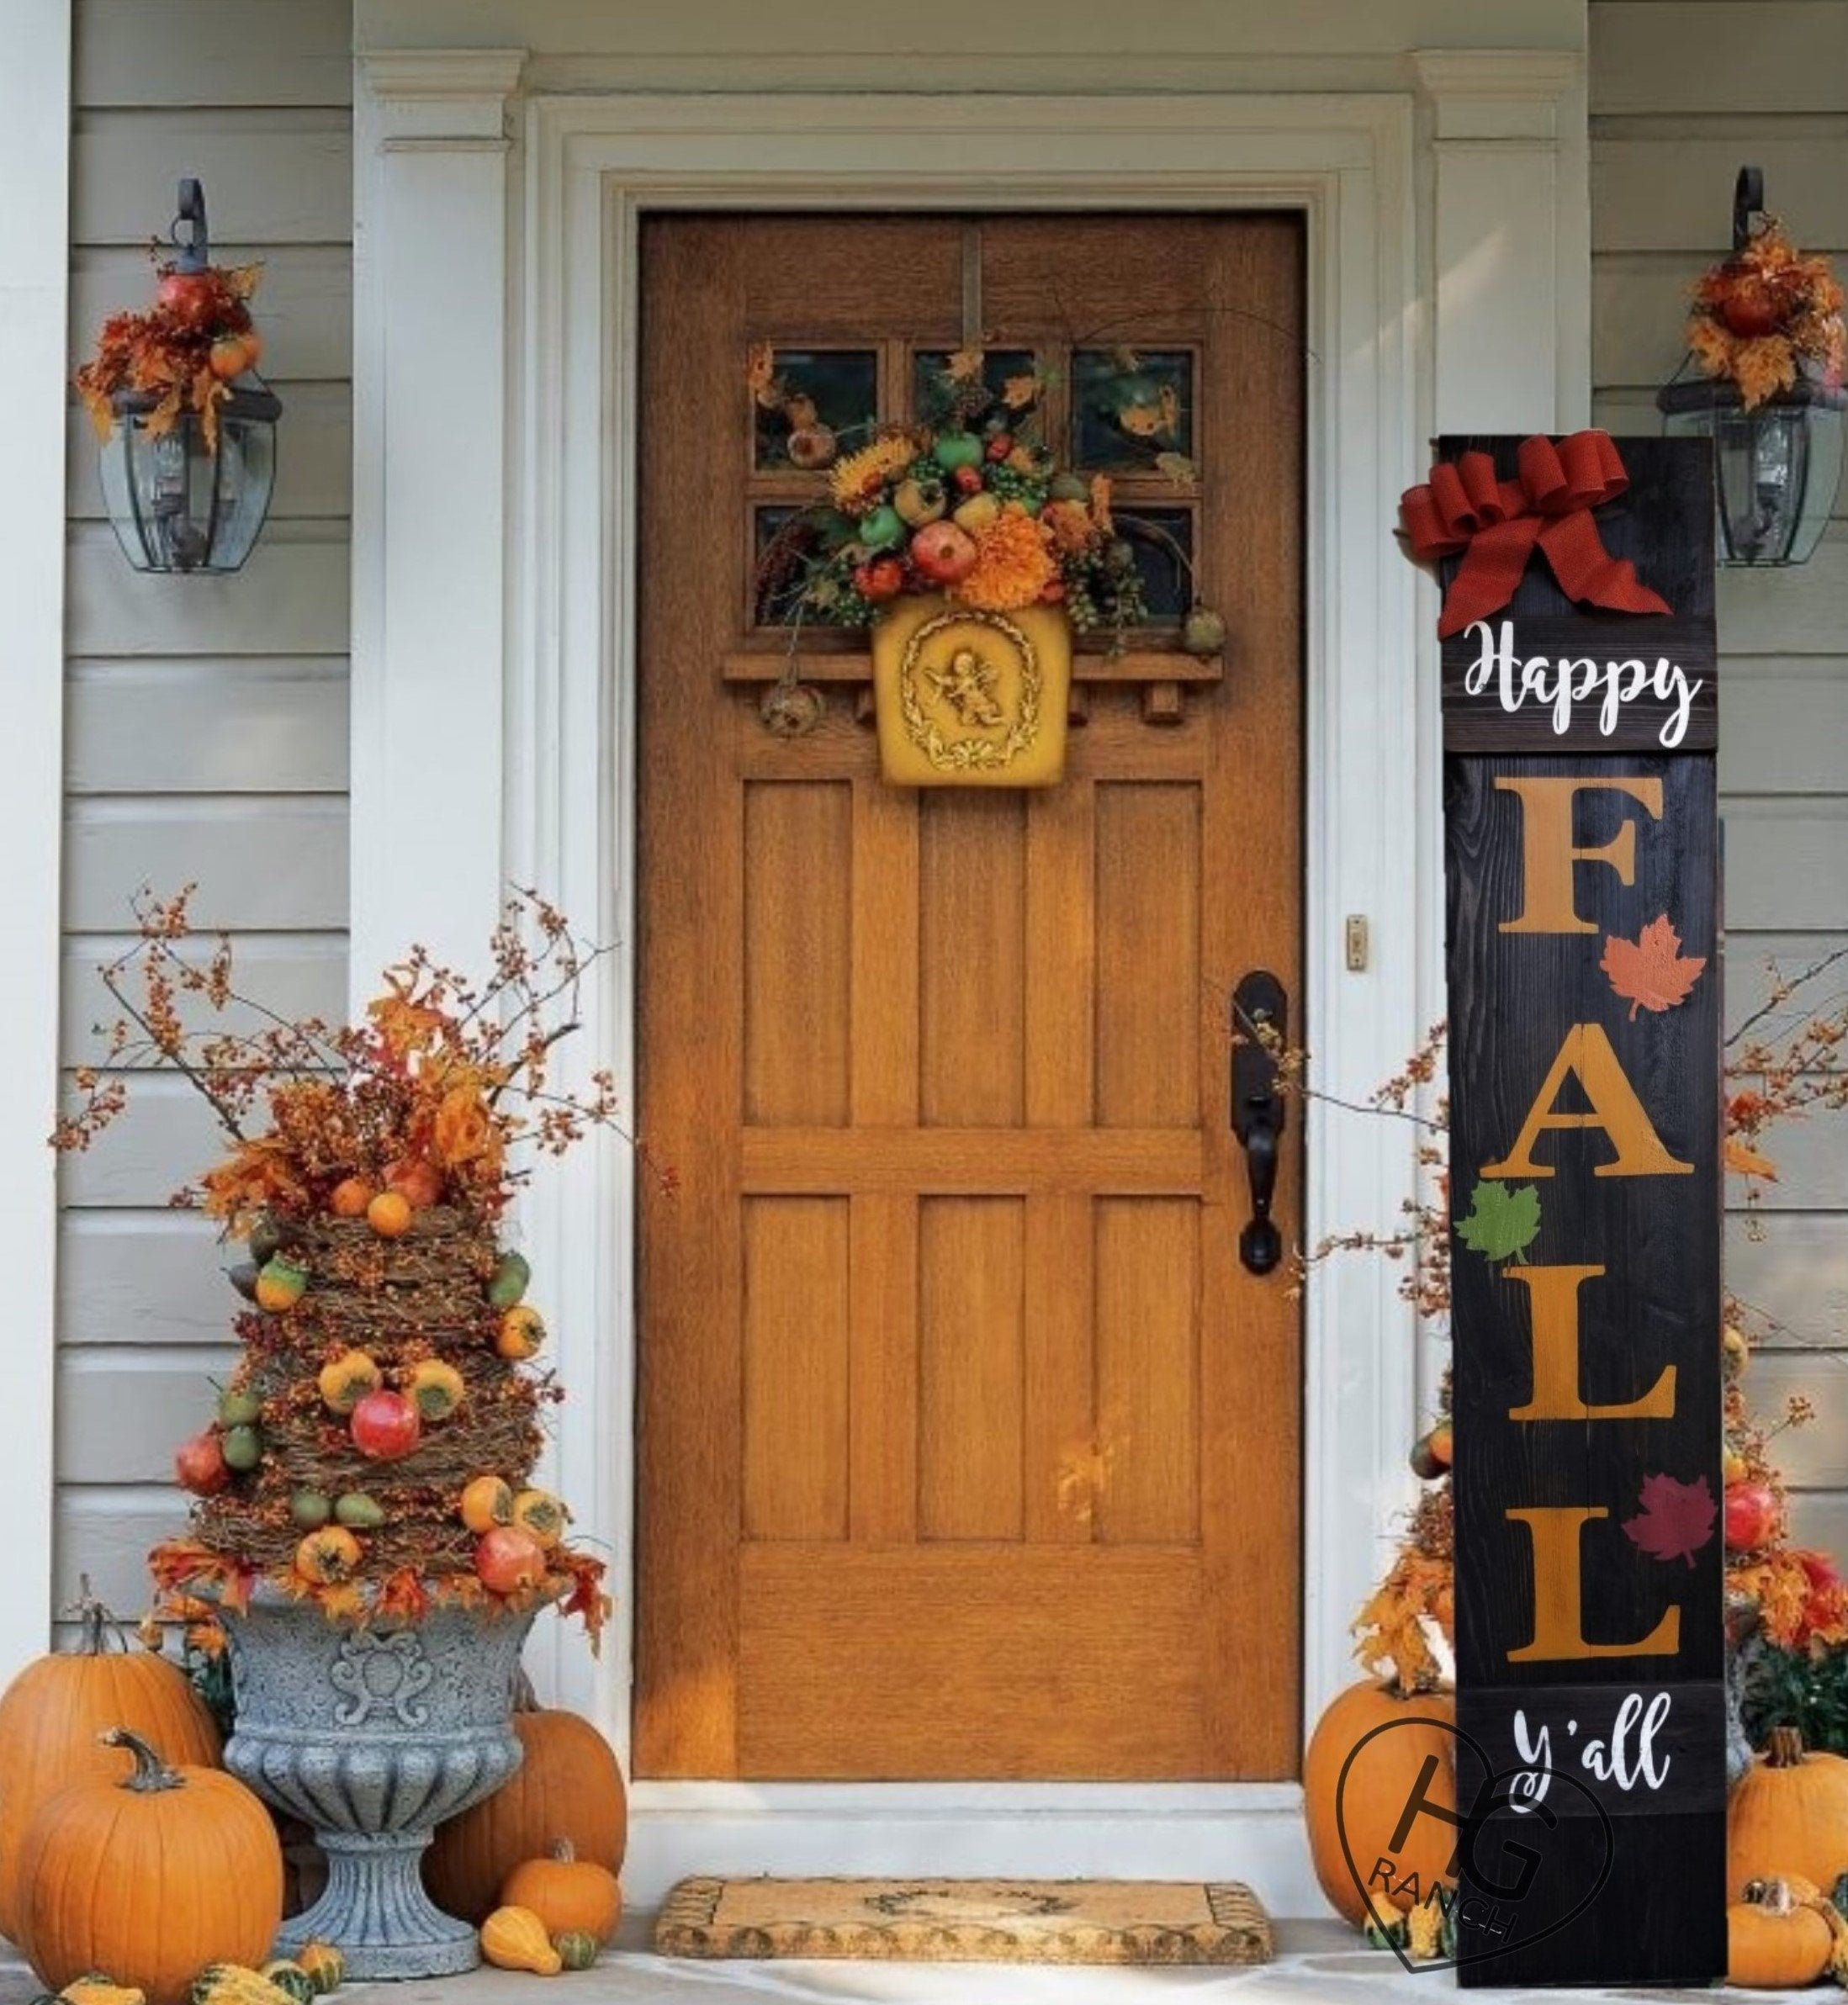 Happy Fall Y'all Porch Sign 6' Leaves Orange Burla